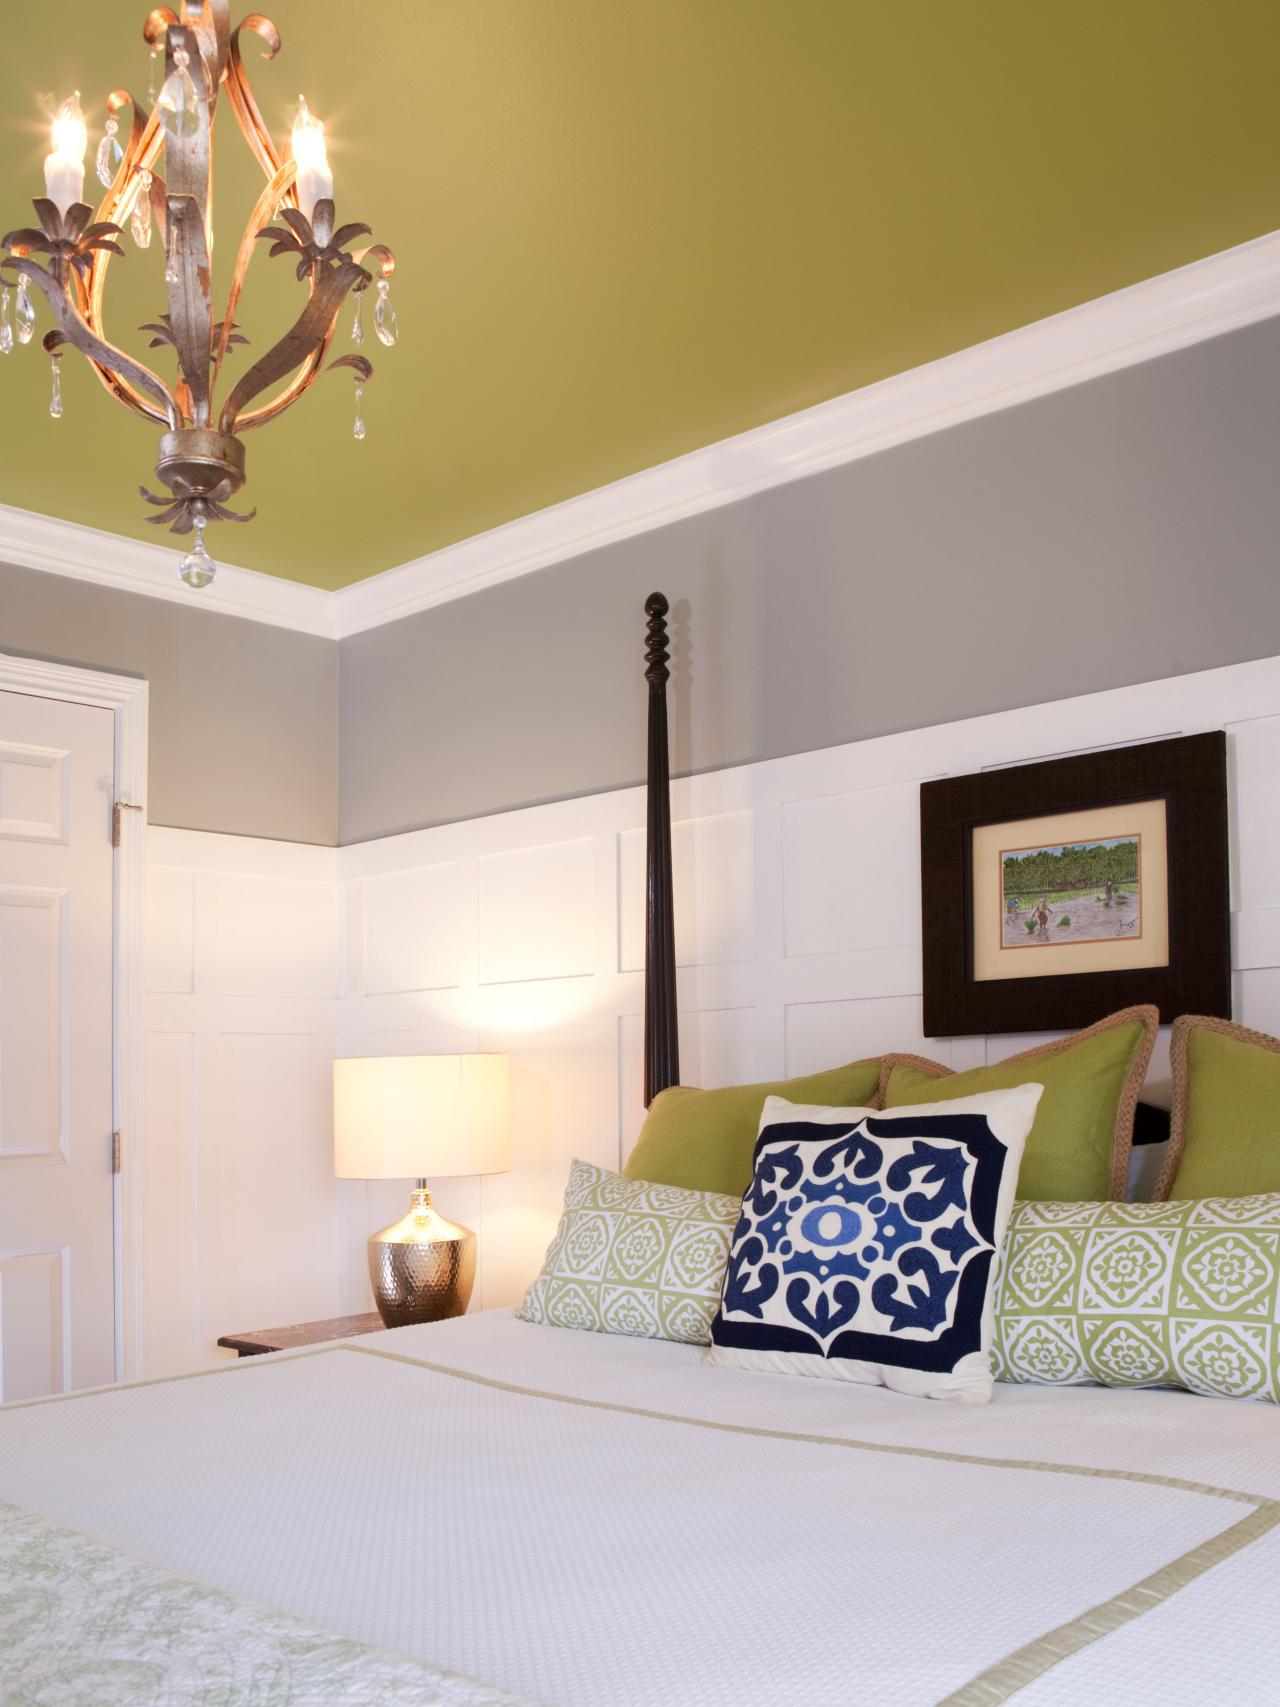 Intimate Yet Dramatic. Bedroom Wall Color Schemes  Pictures  Options   Ideas   HGTV